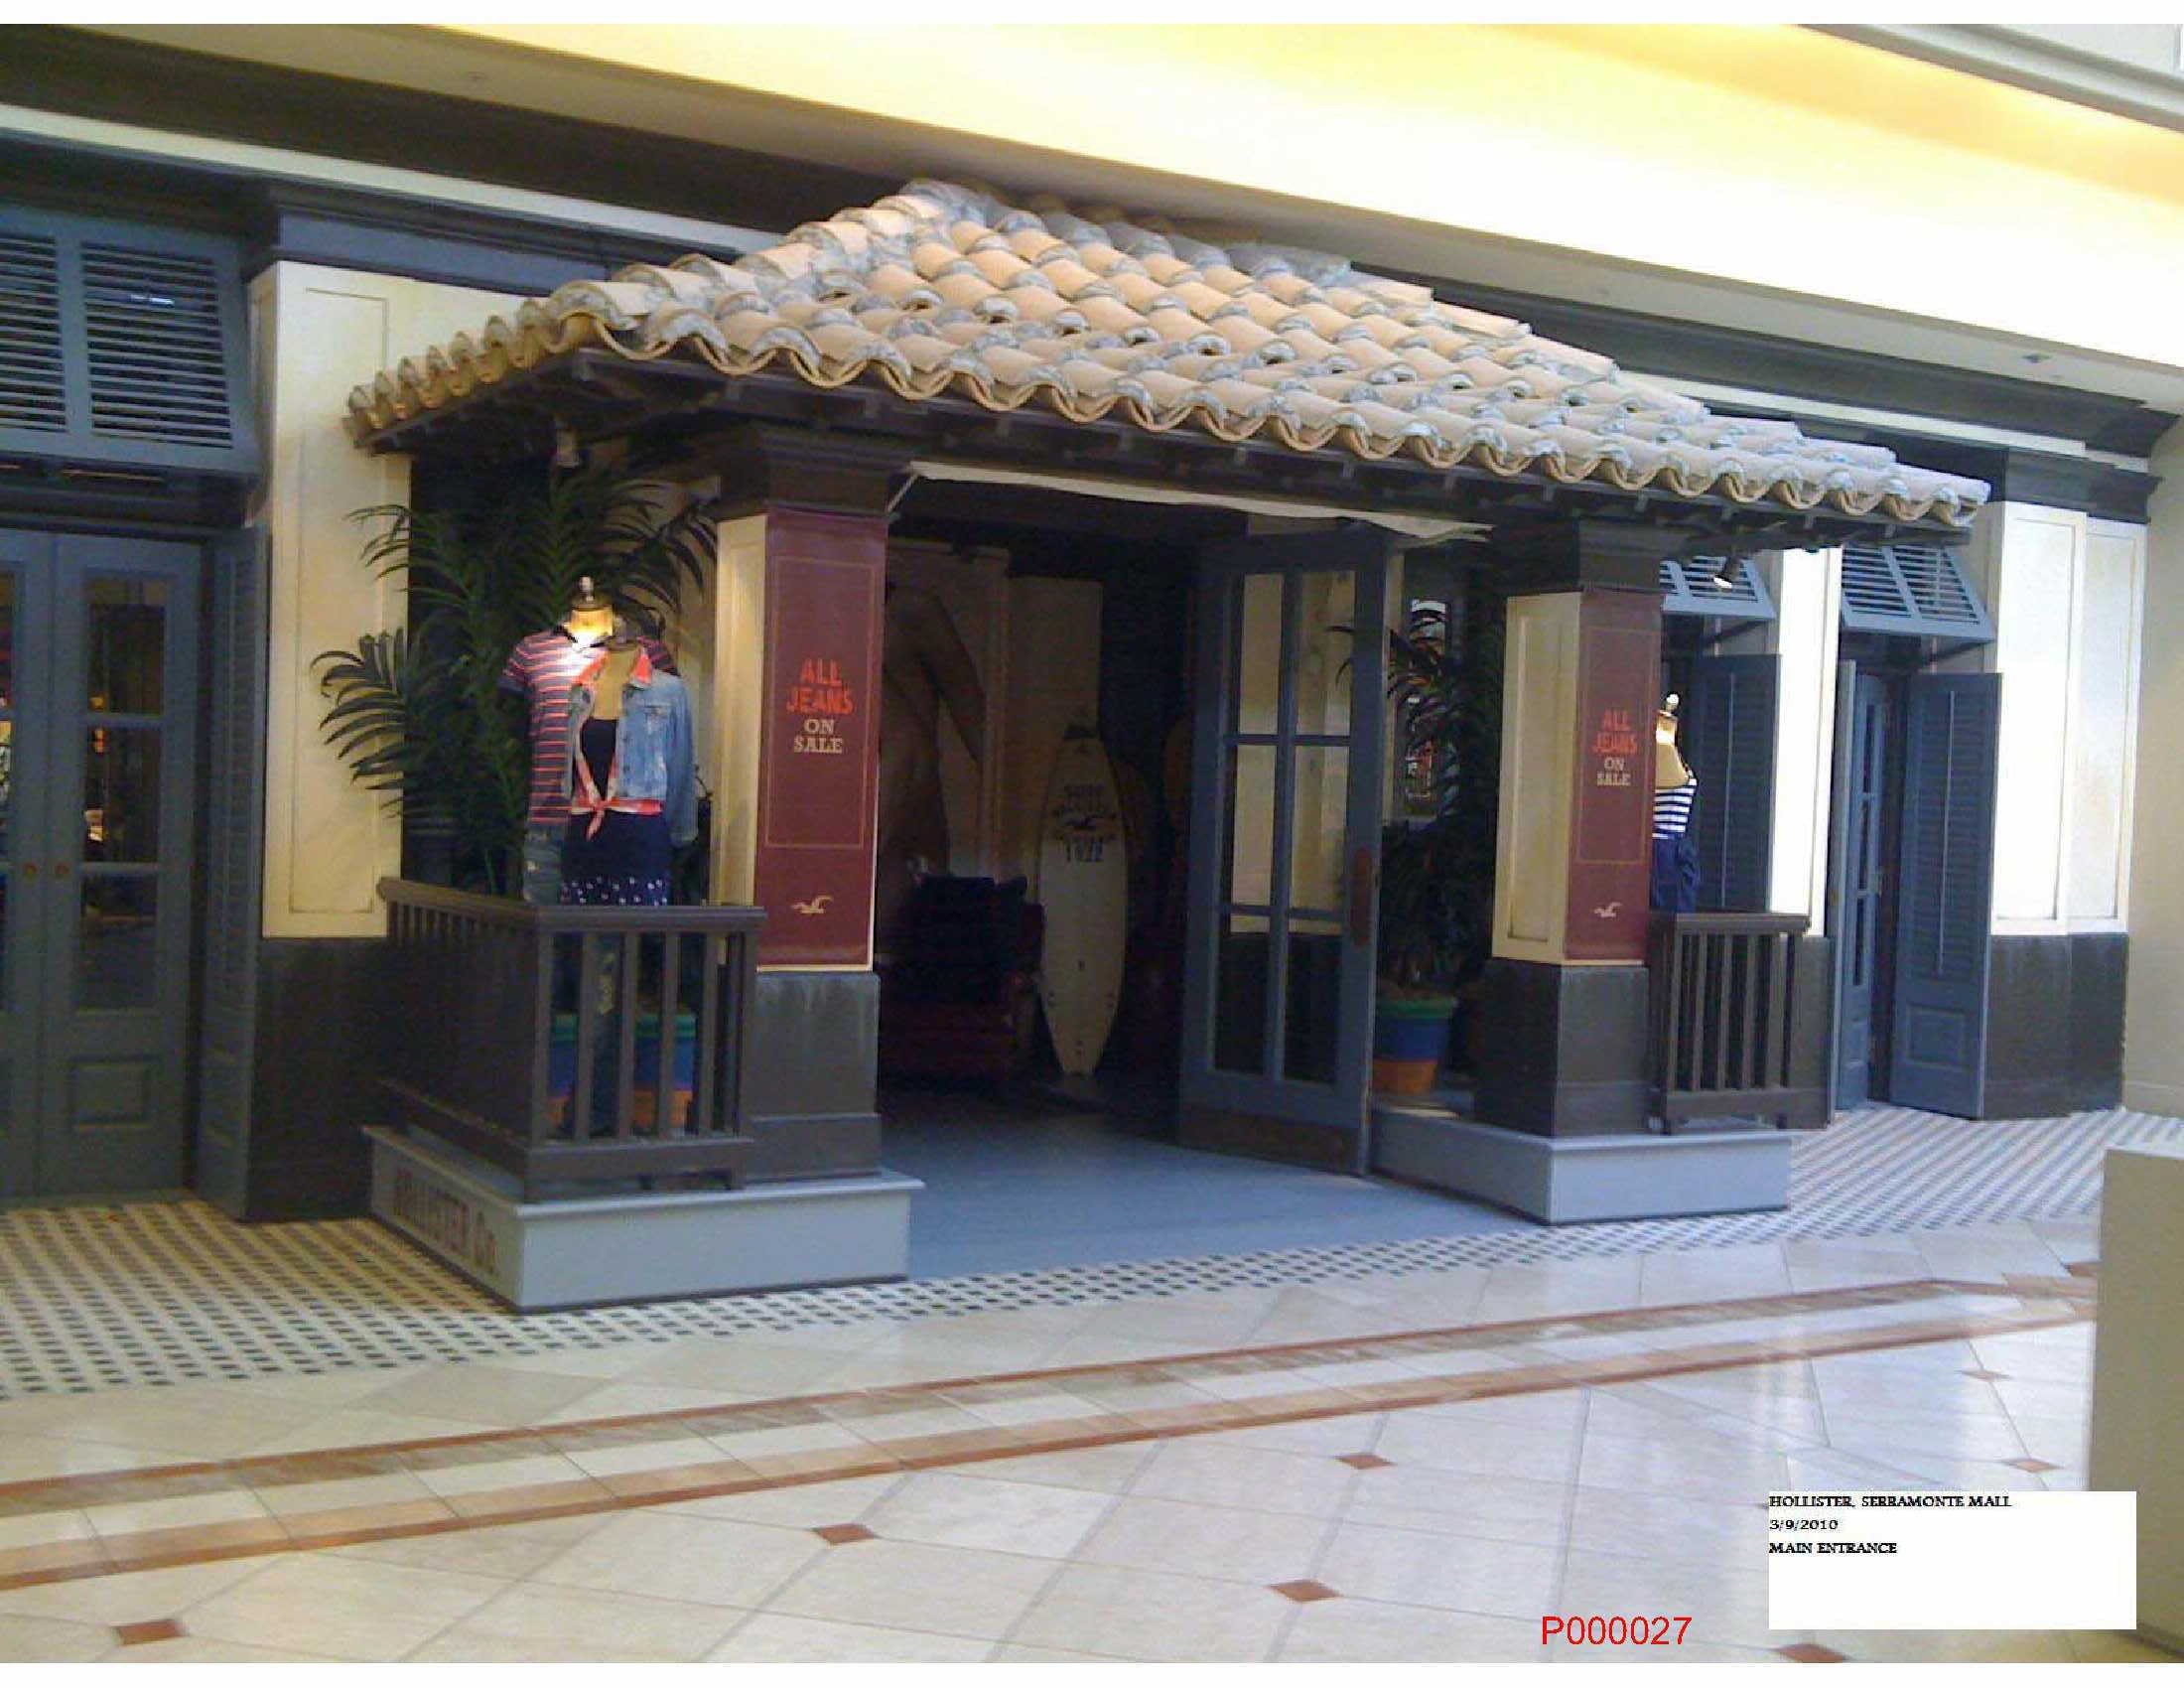 Hollister Stores Ccdc V Abercrombie Fitch Creec